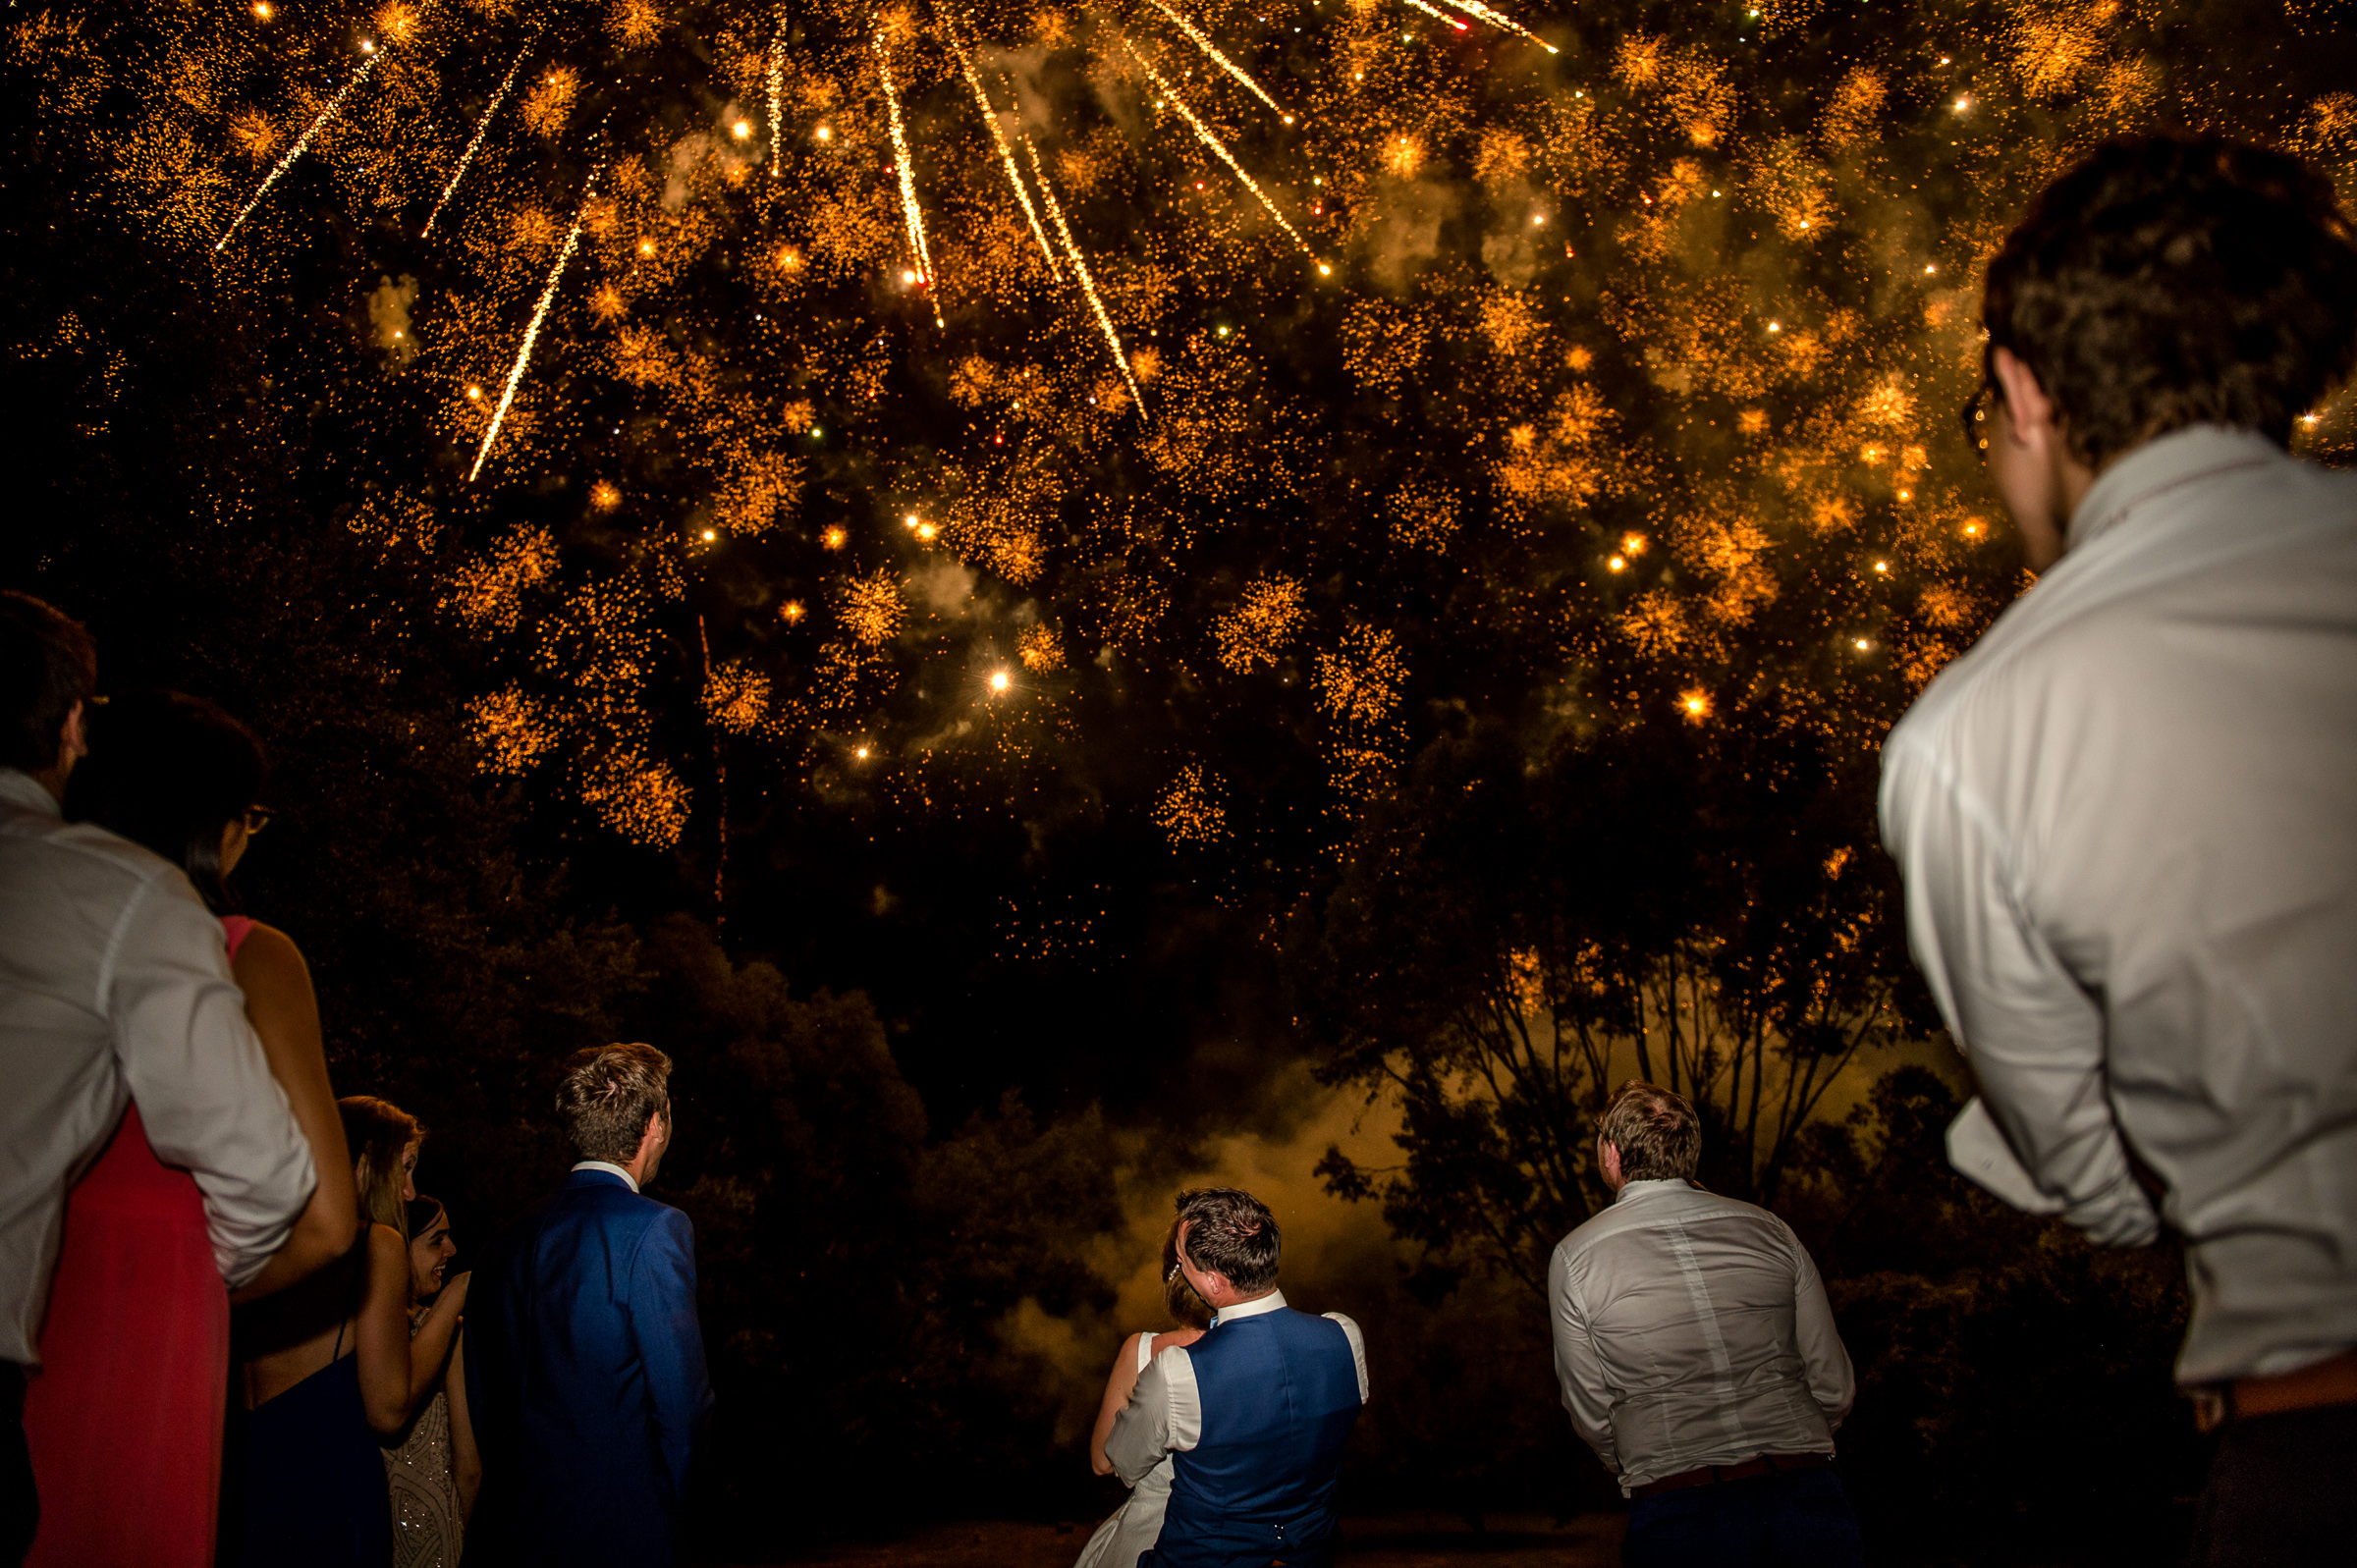 Wedding fireworks light up the sky - photo by Gaelle Le Berre Photography